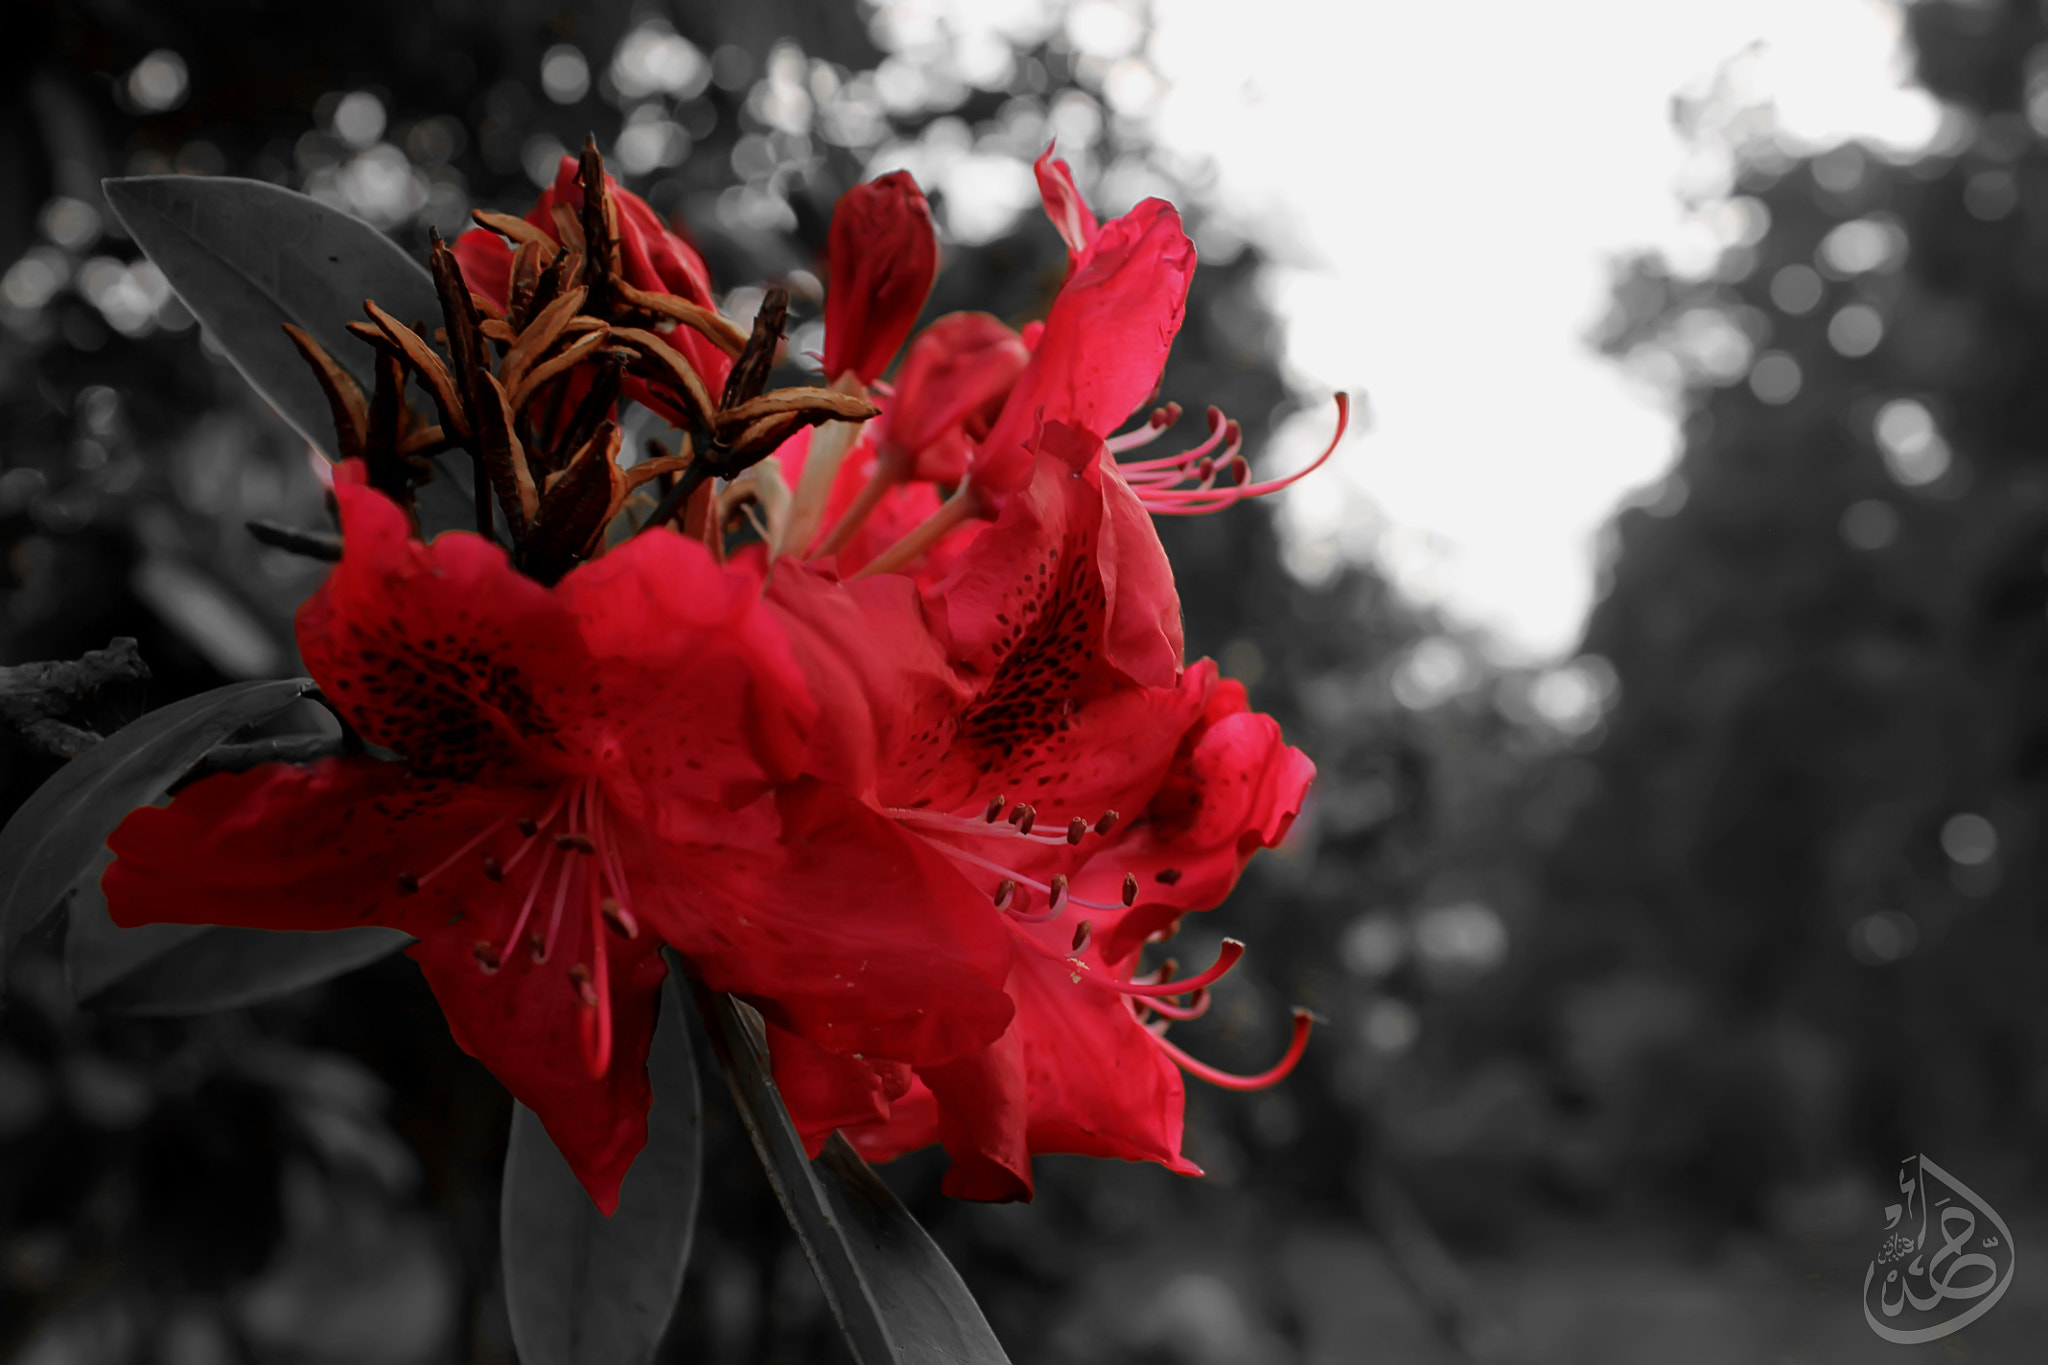 Photograph Red flower by Ahmed Fayadh on 500px